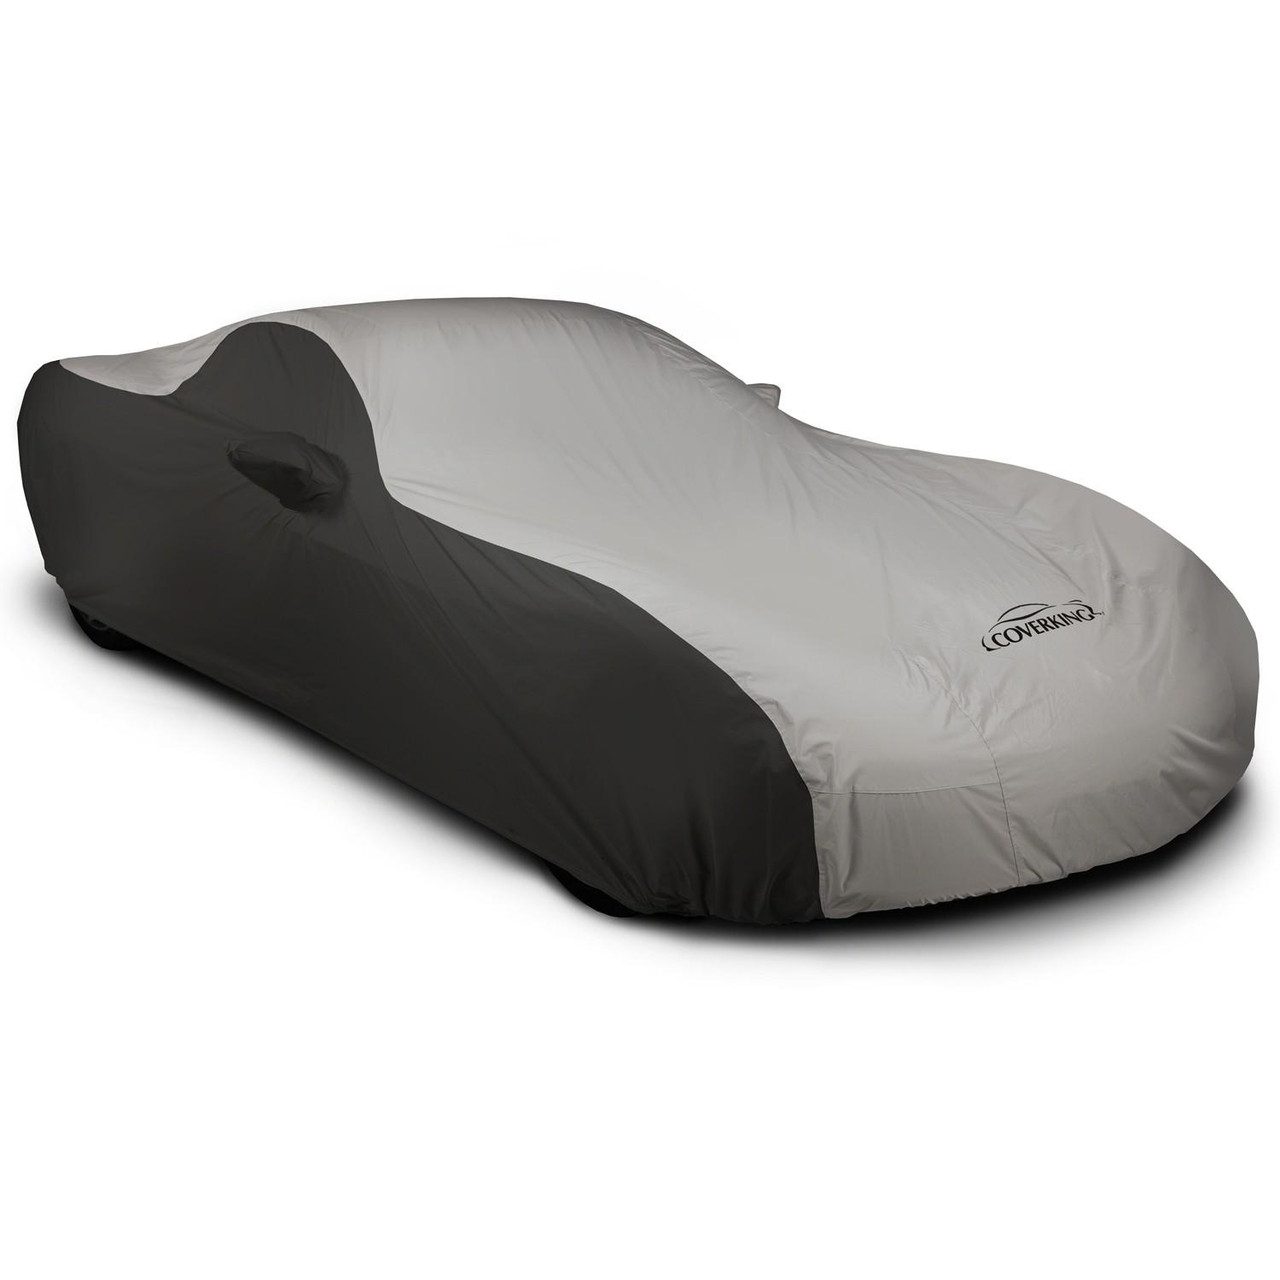 Corvette Outdoor Car Cover black/gray